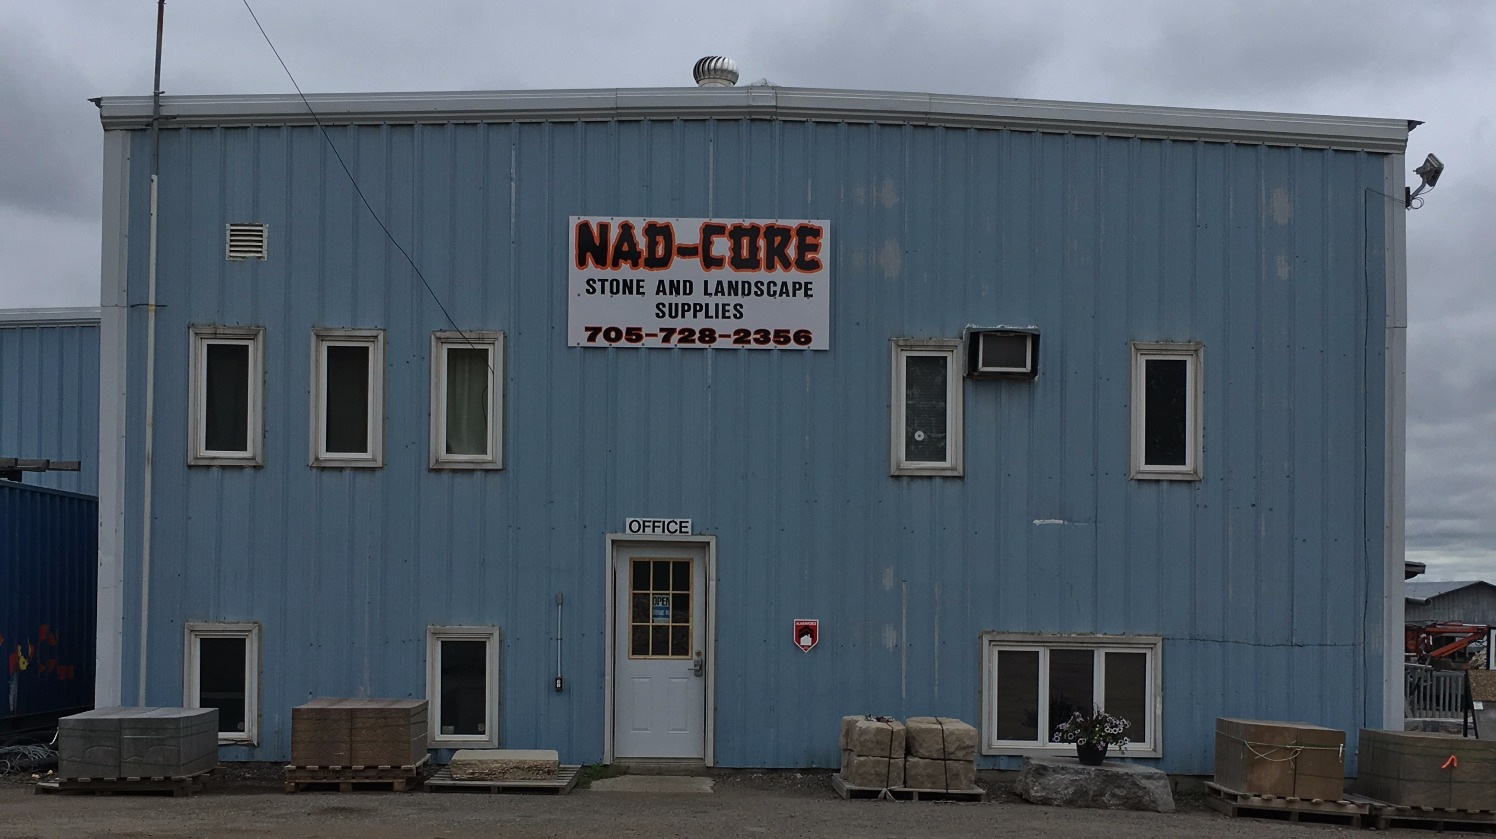 Welcome to Nad-Core